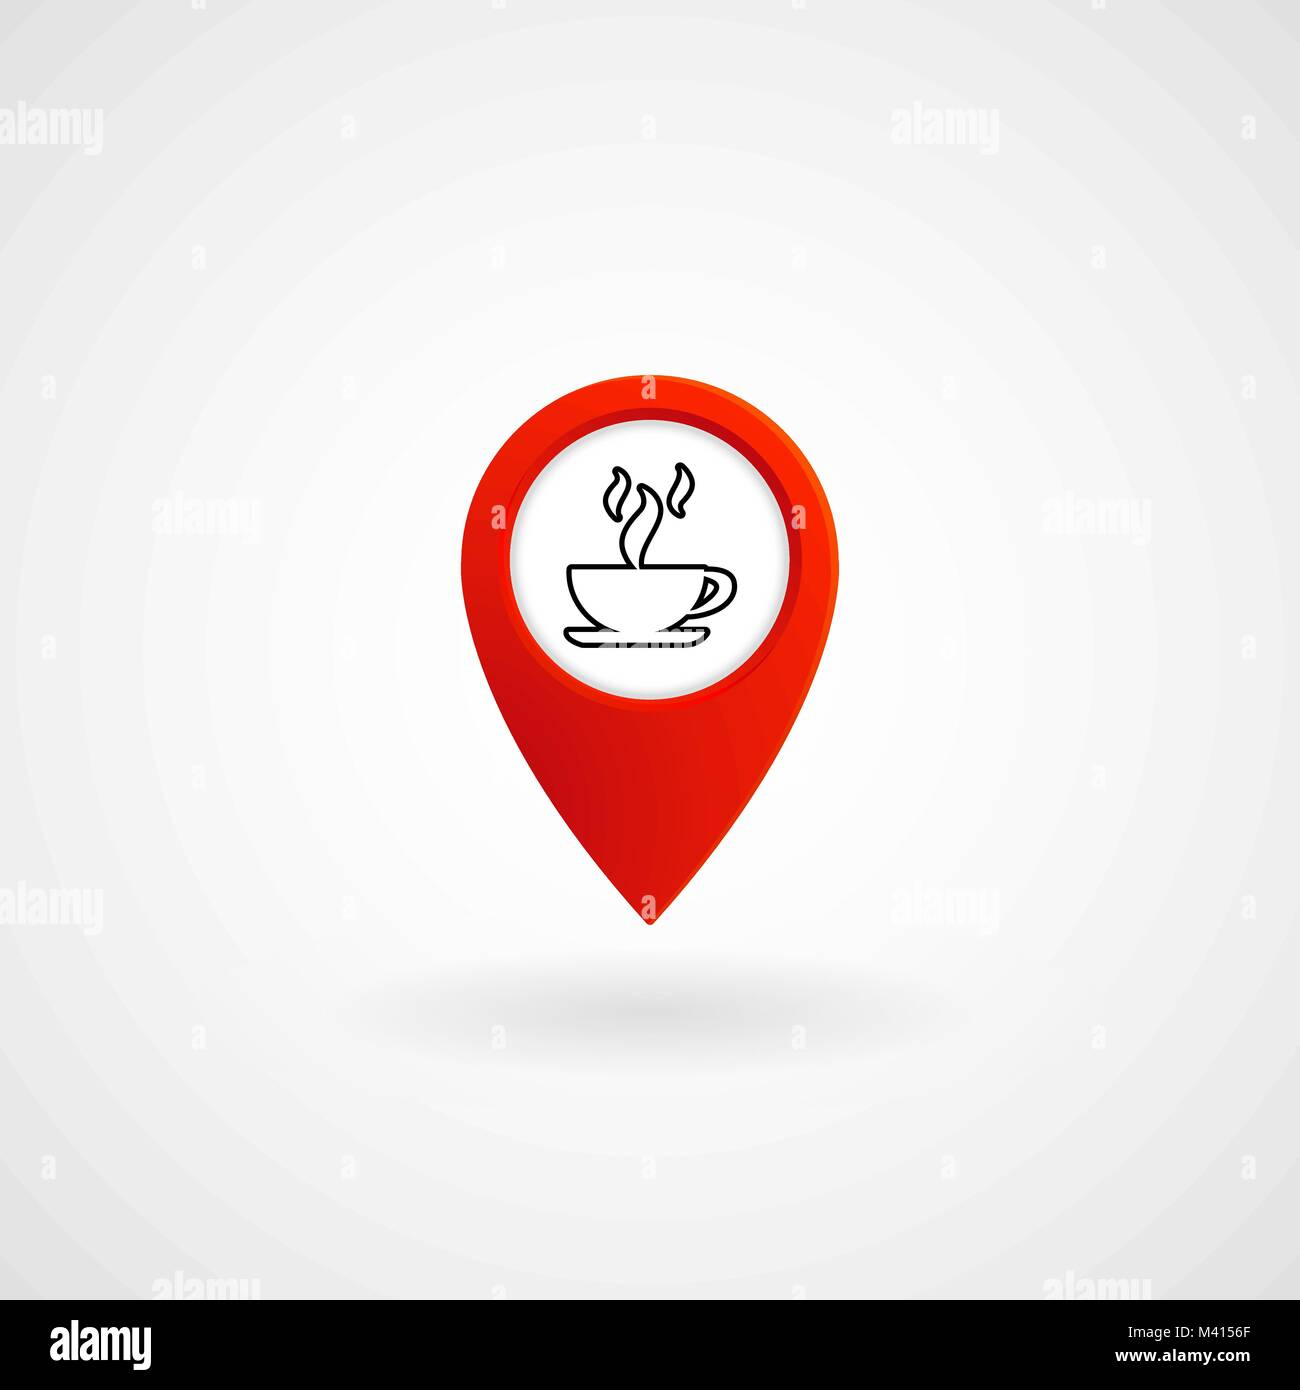 Red Location Icon for Cafe, Vector, Illustration, Eps File - Stock Vector